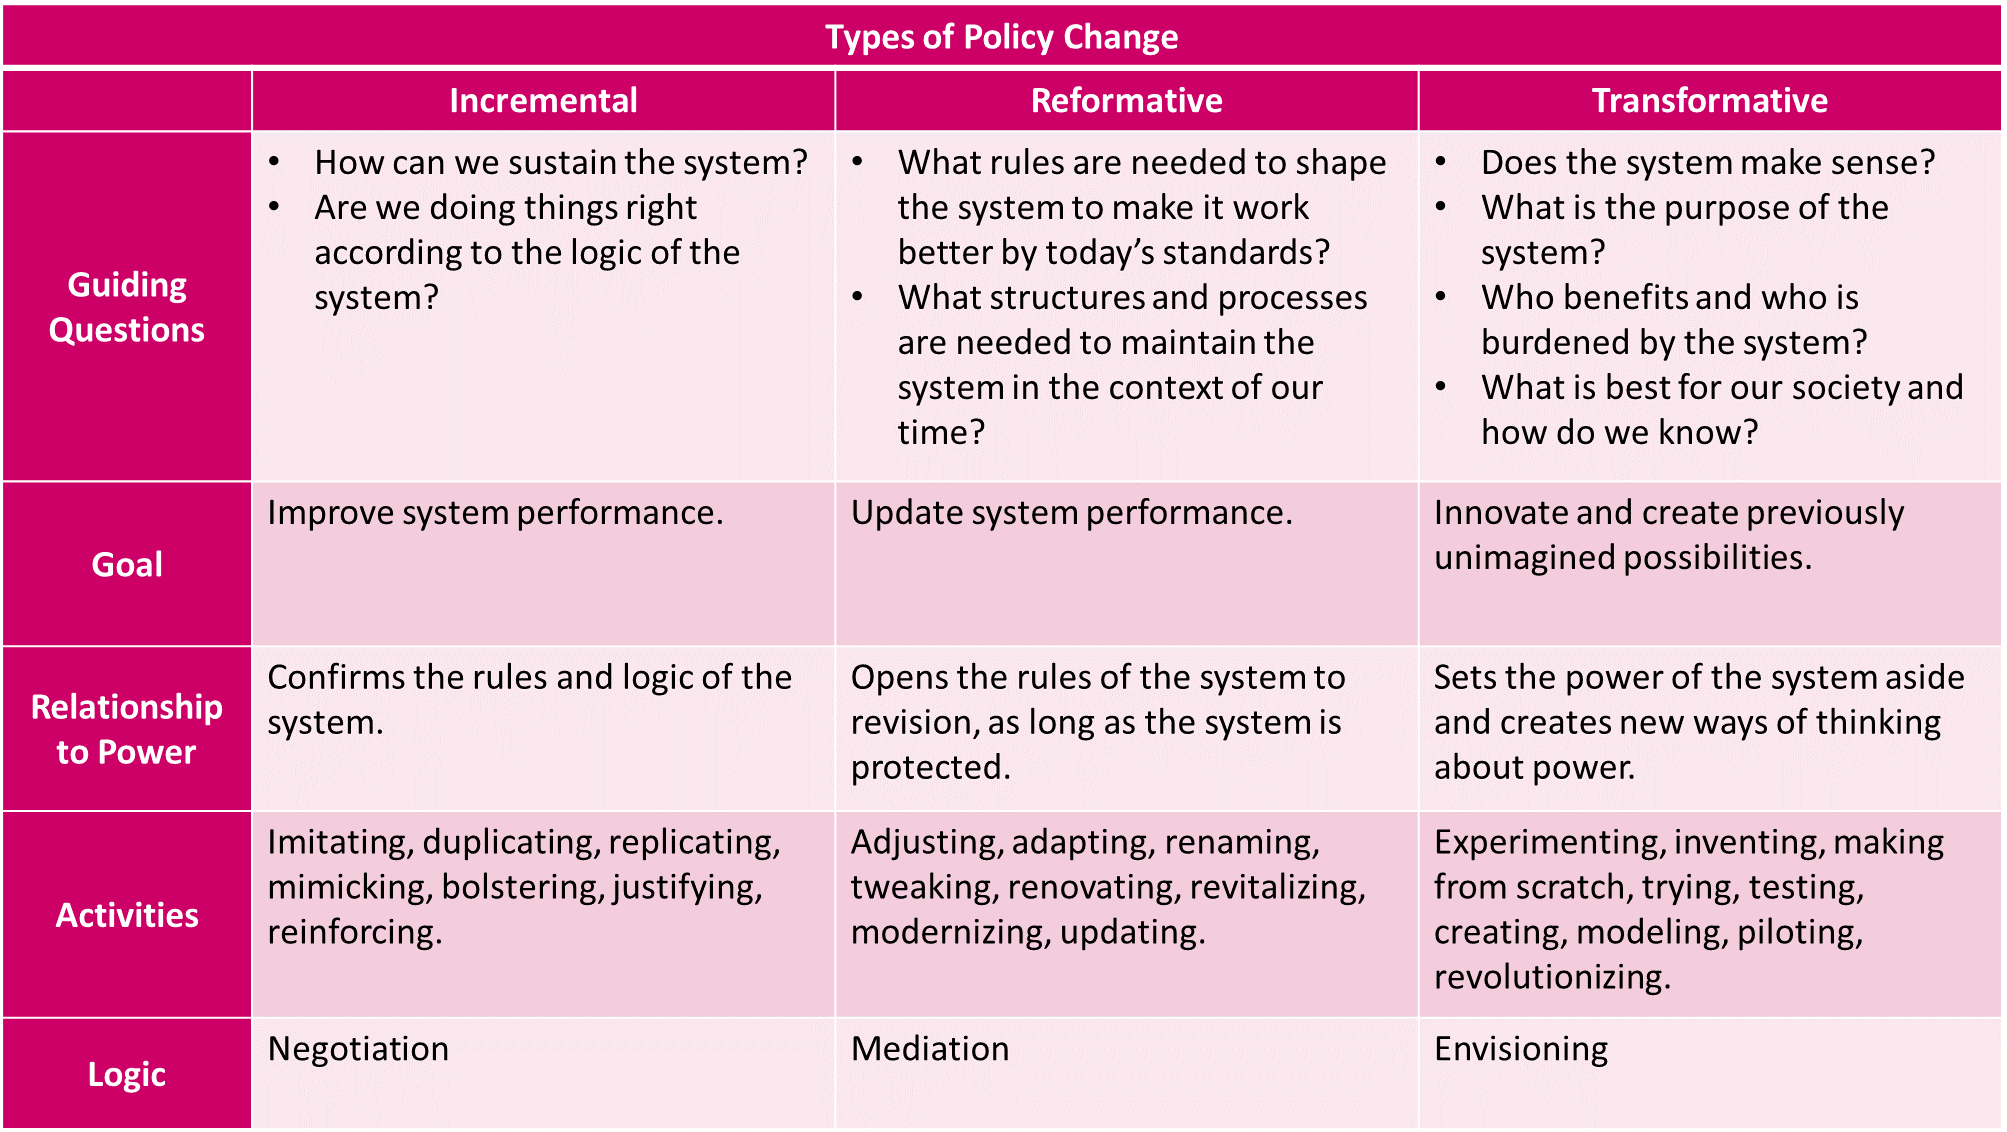 Source: Adapted from Sustainable Development Goals (SDG) Transformation Forum